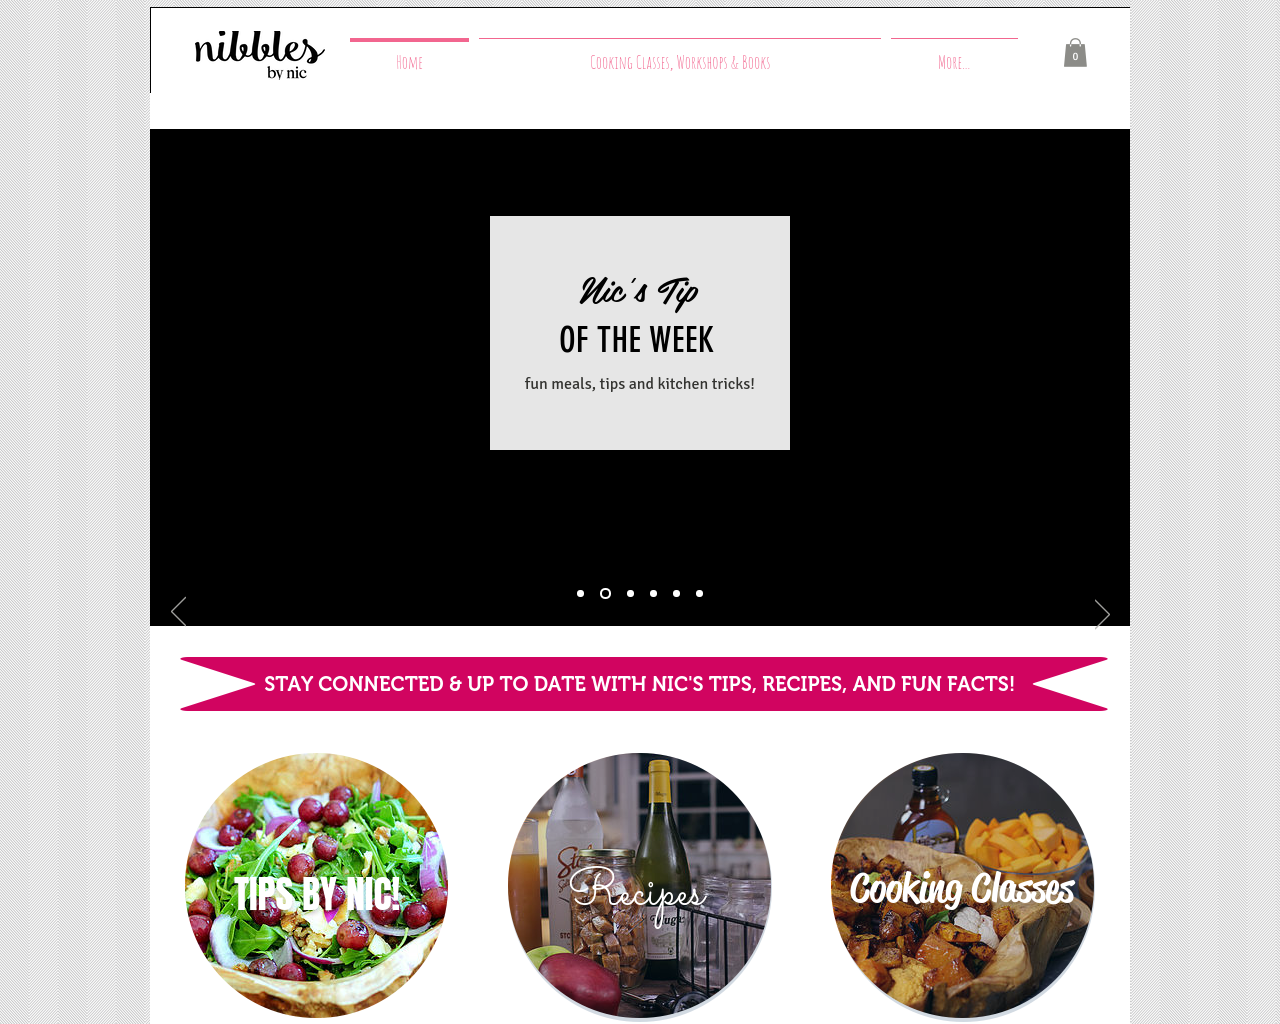 Nibbles-By-Nic-Advertising-Reviews-Pricing